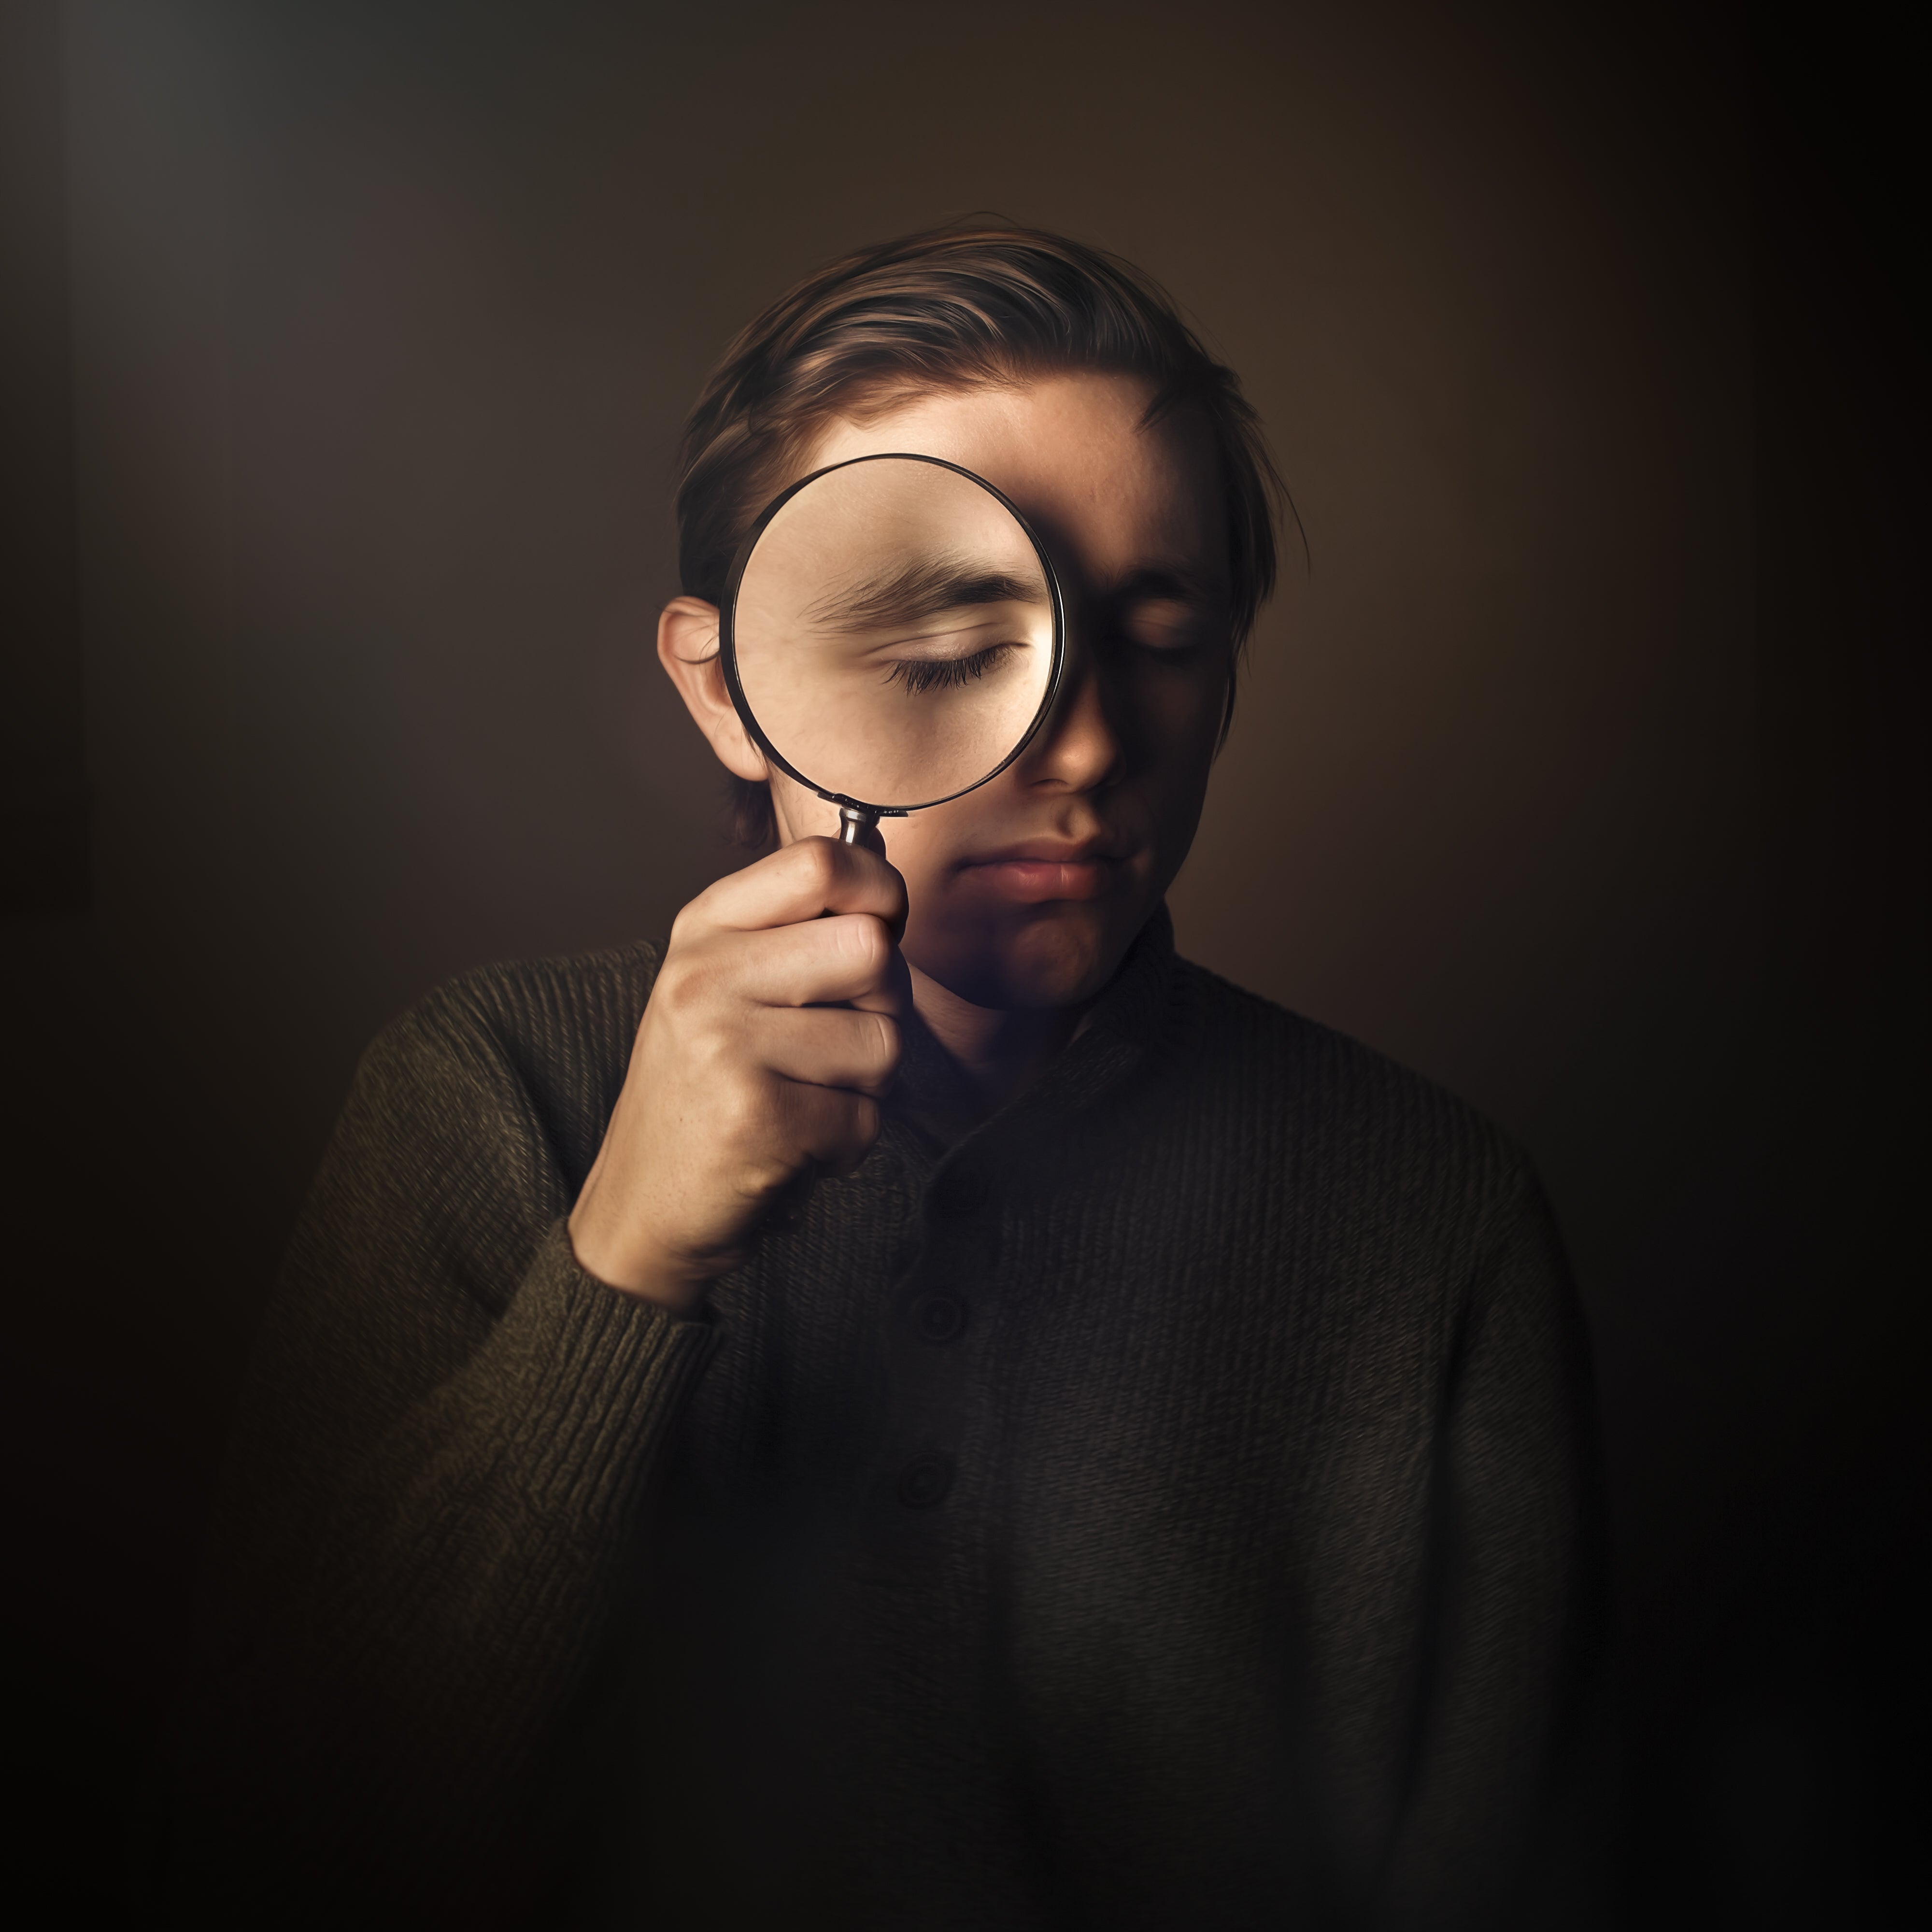 boy with brown sweater and brown hair presses a magnifying glass against his eye caroline jensen burnside 35